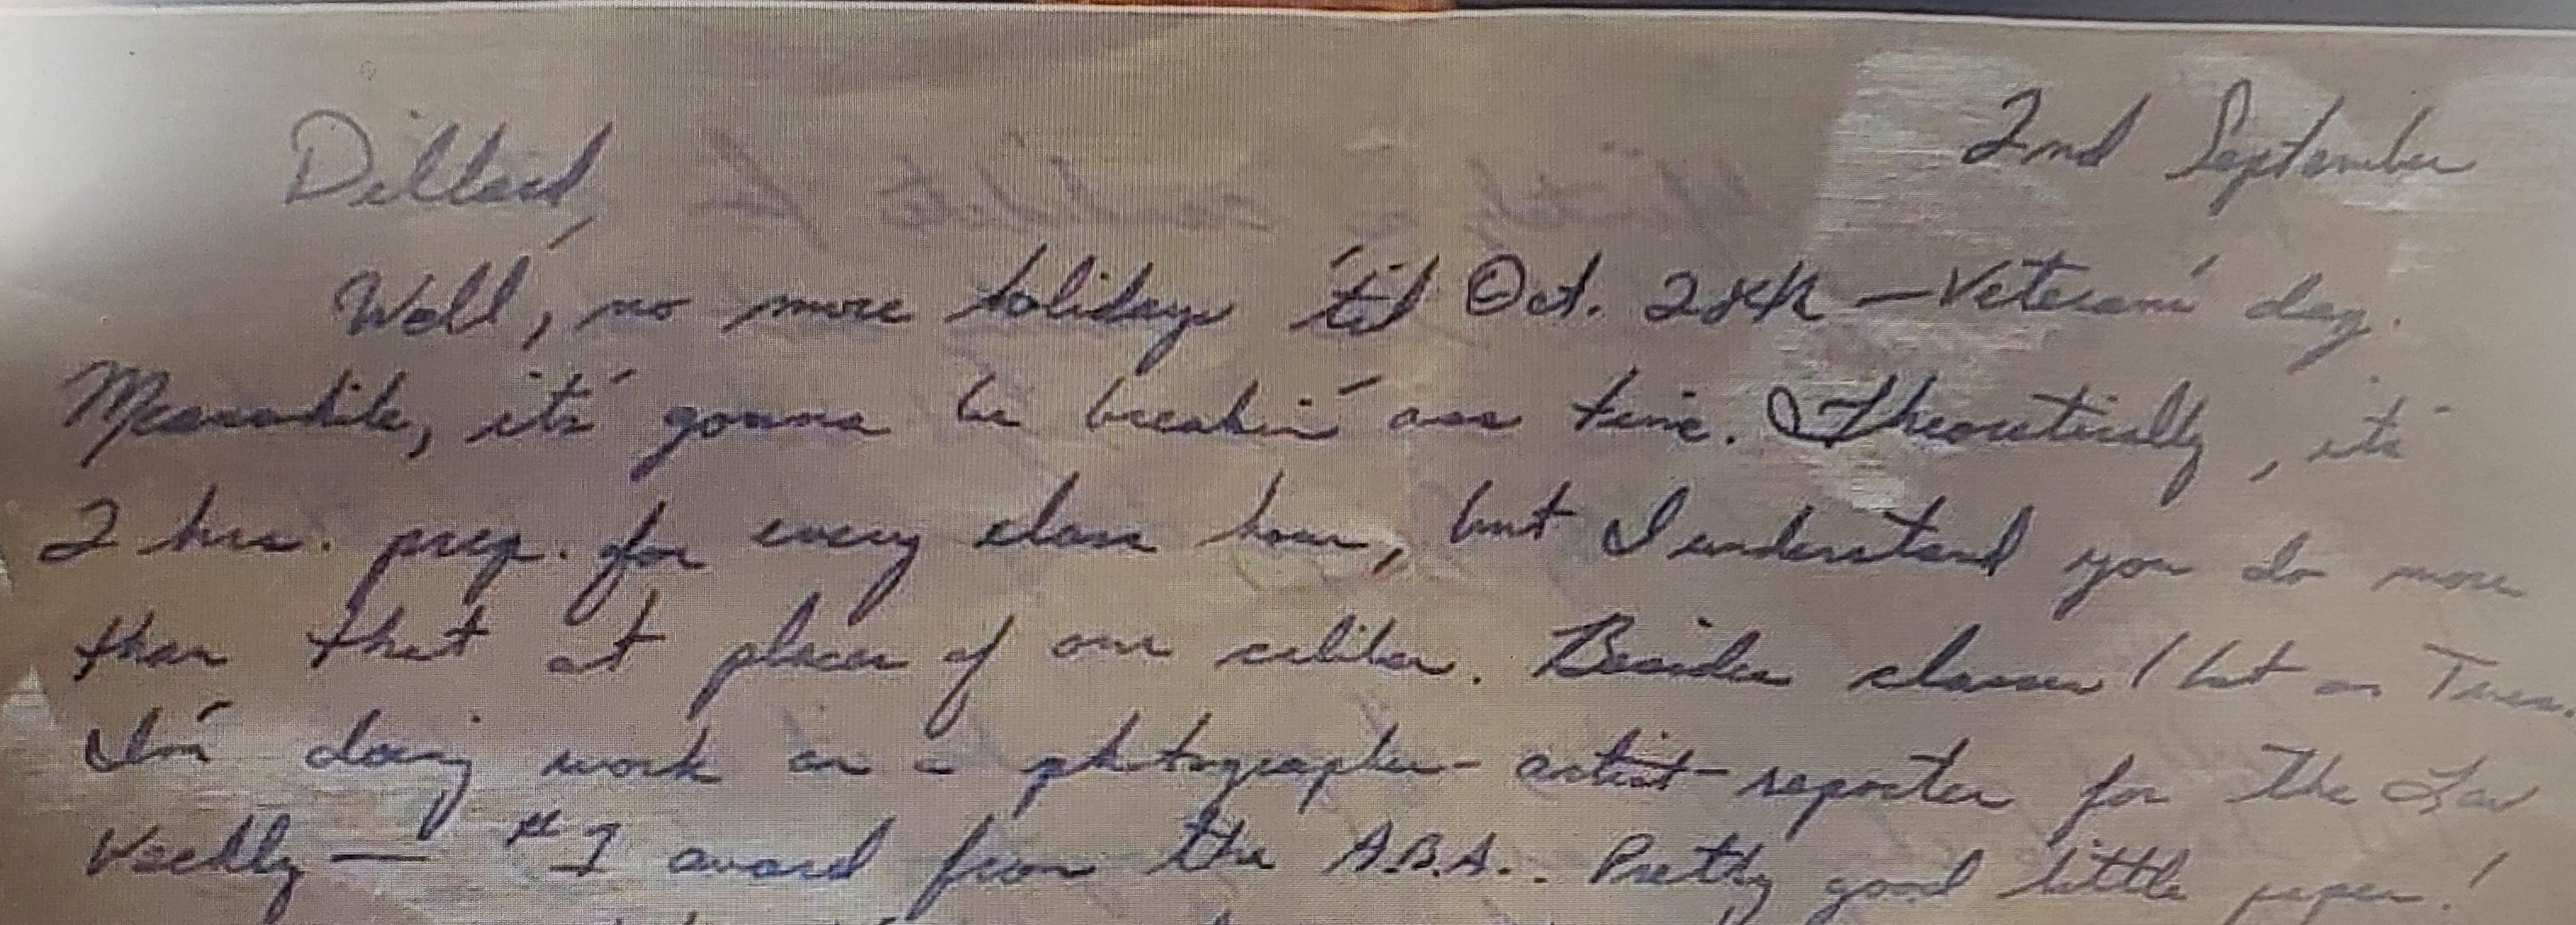 The sender of a 1974 letter found on The Hop MKE writes about a job at the Virginia Law Weekly.